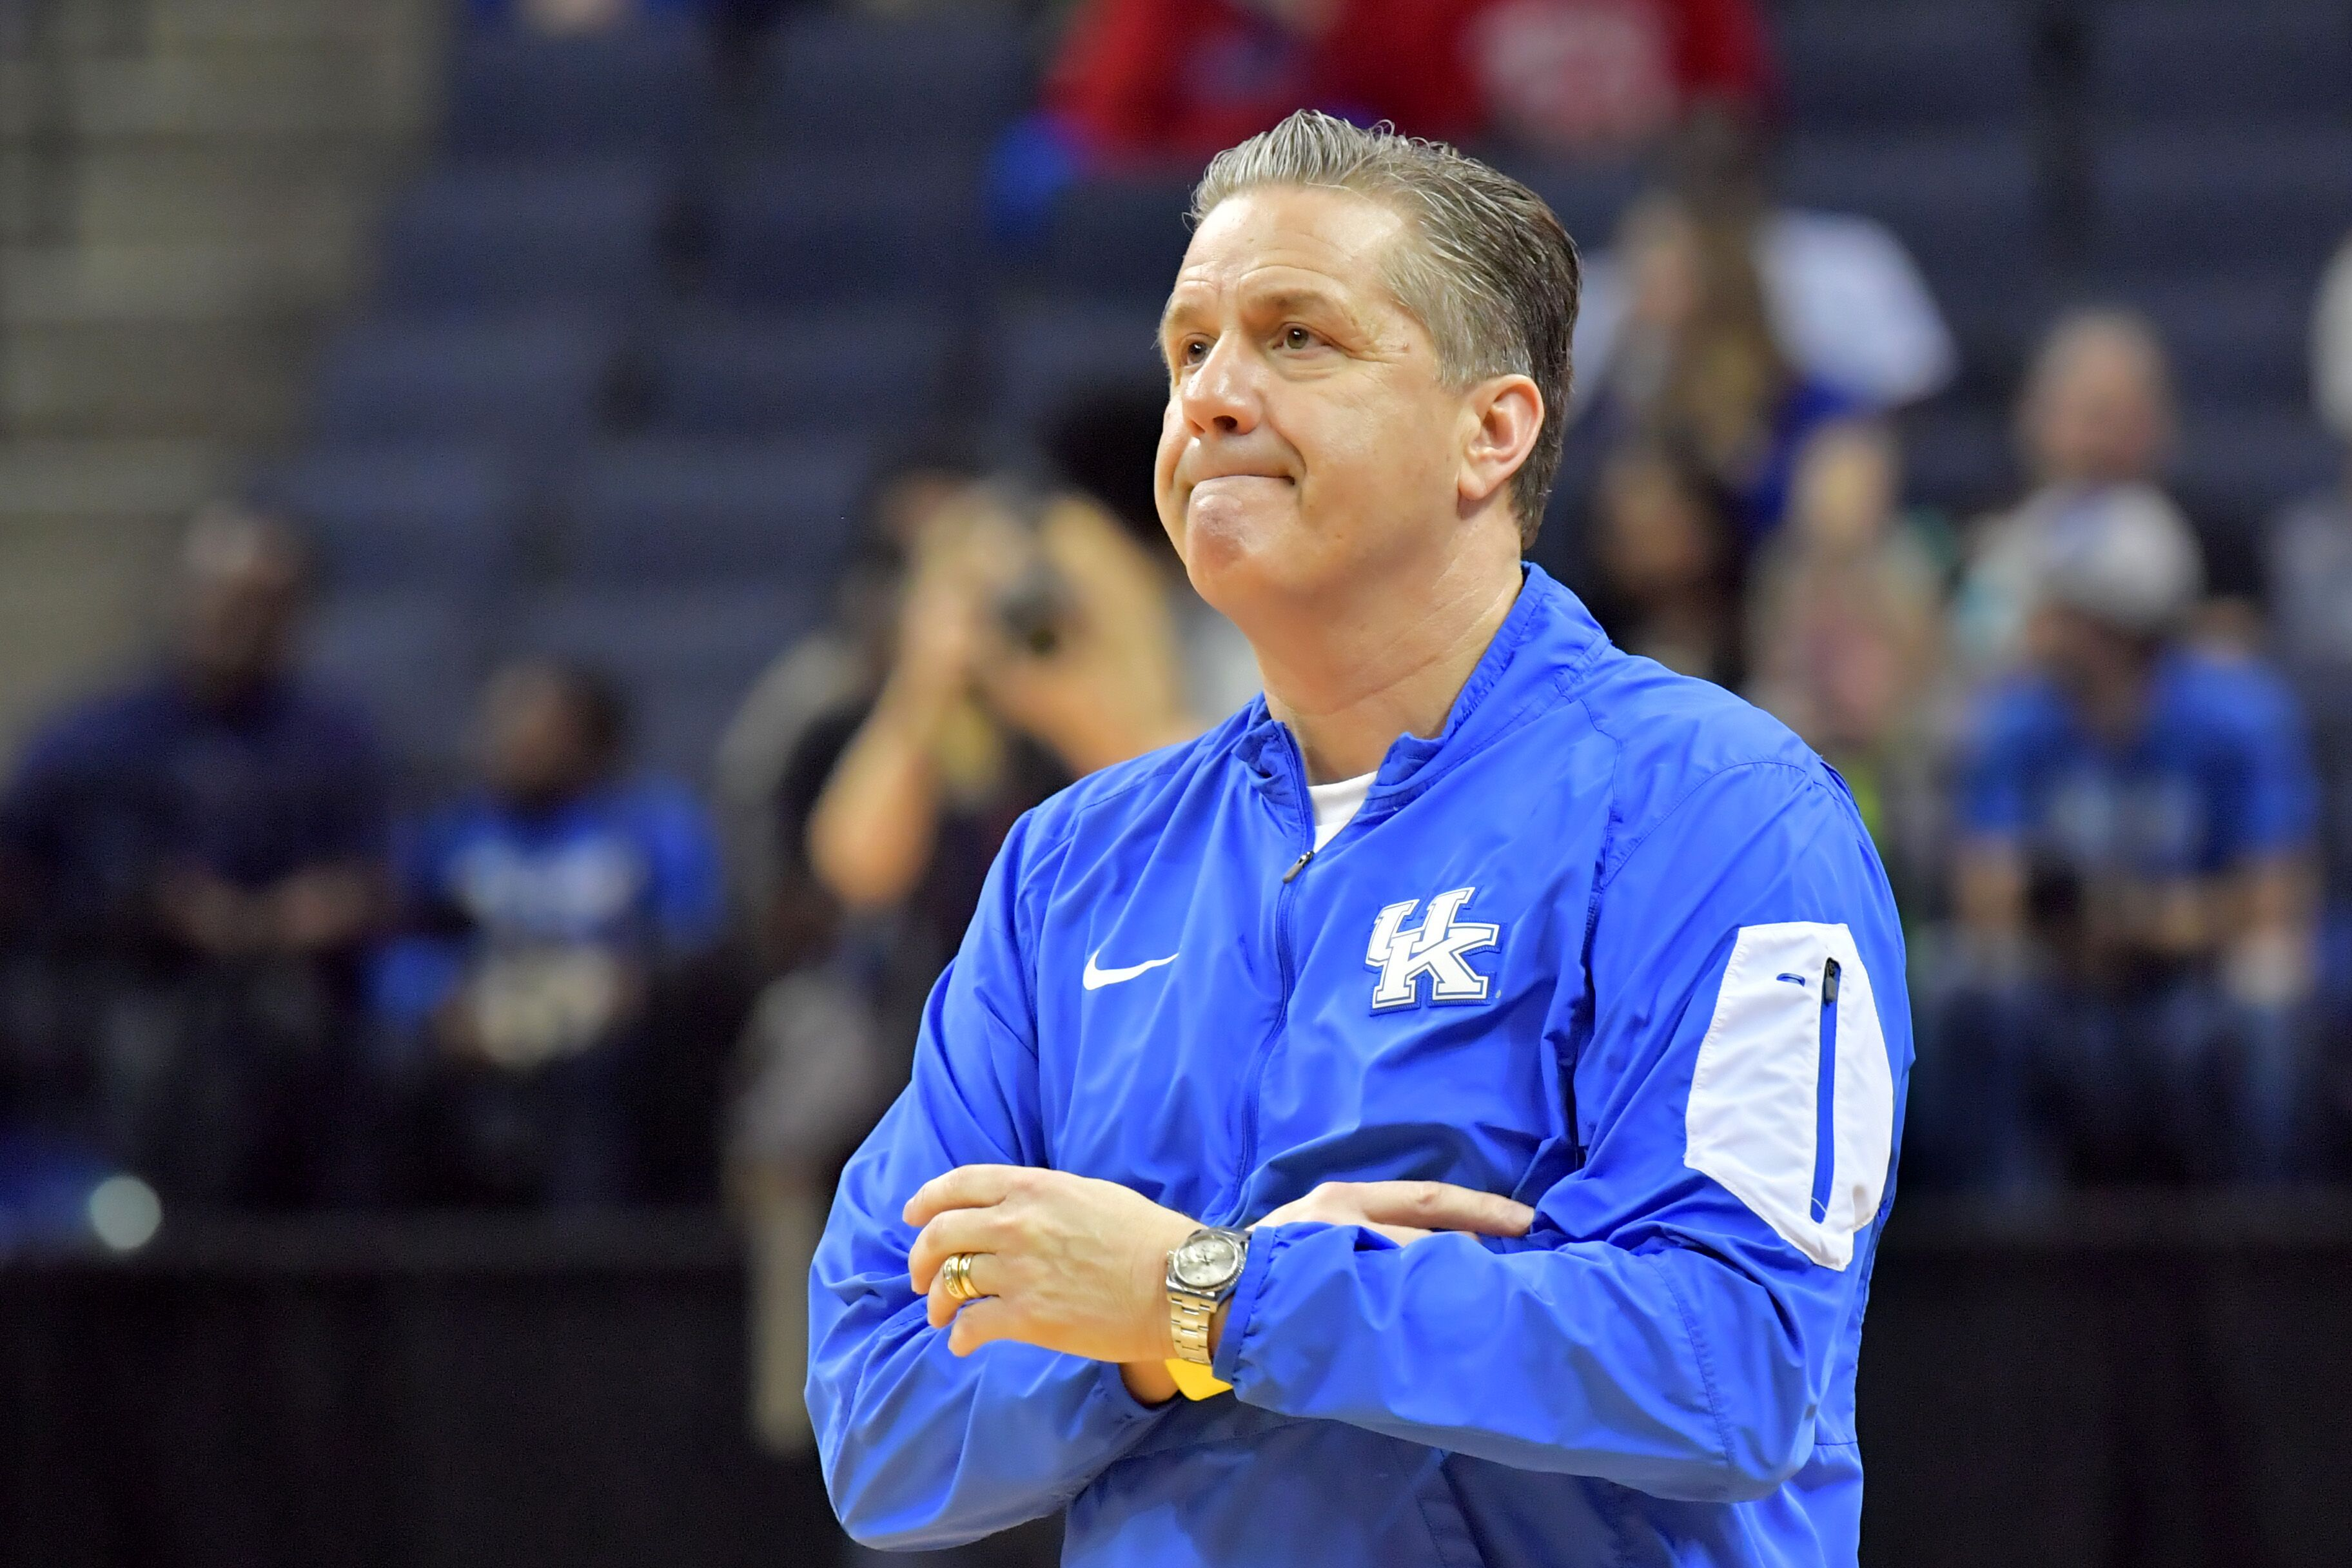 2013 Recruits Uk Basketball And Football Recruiting News: Kentucky Basketball Recruiting: John Calipari Looks To